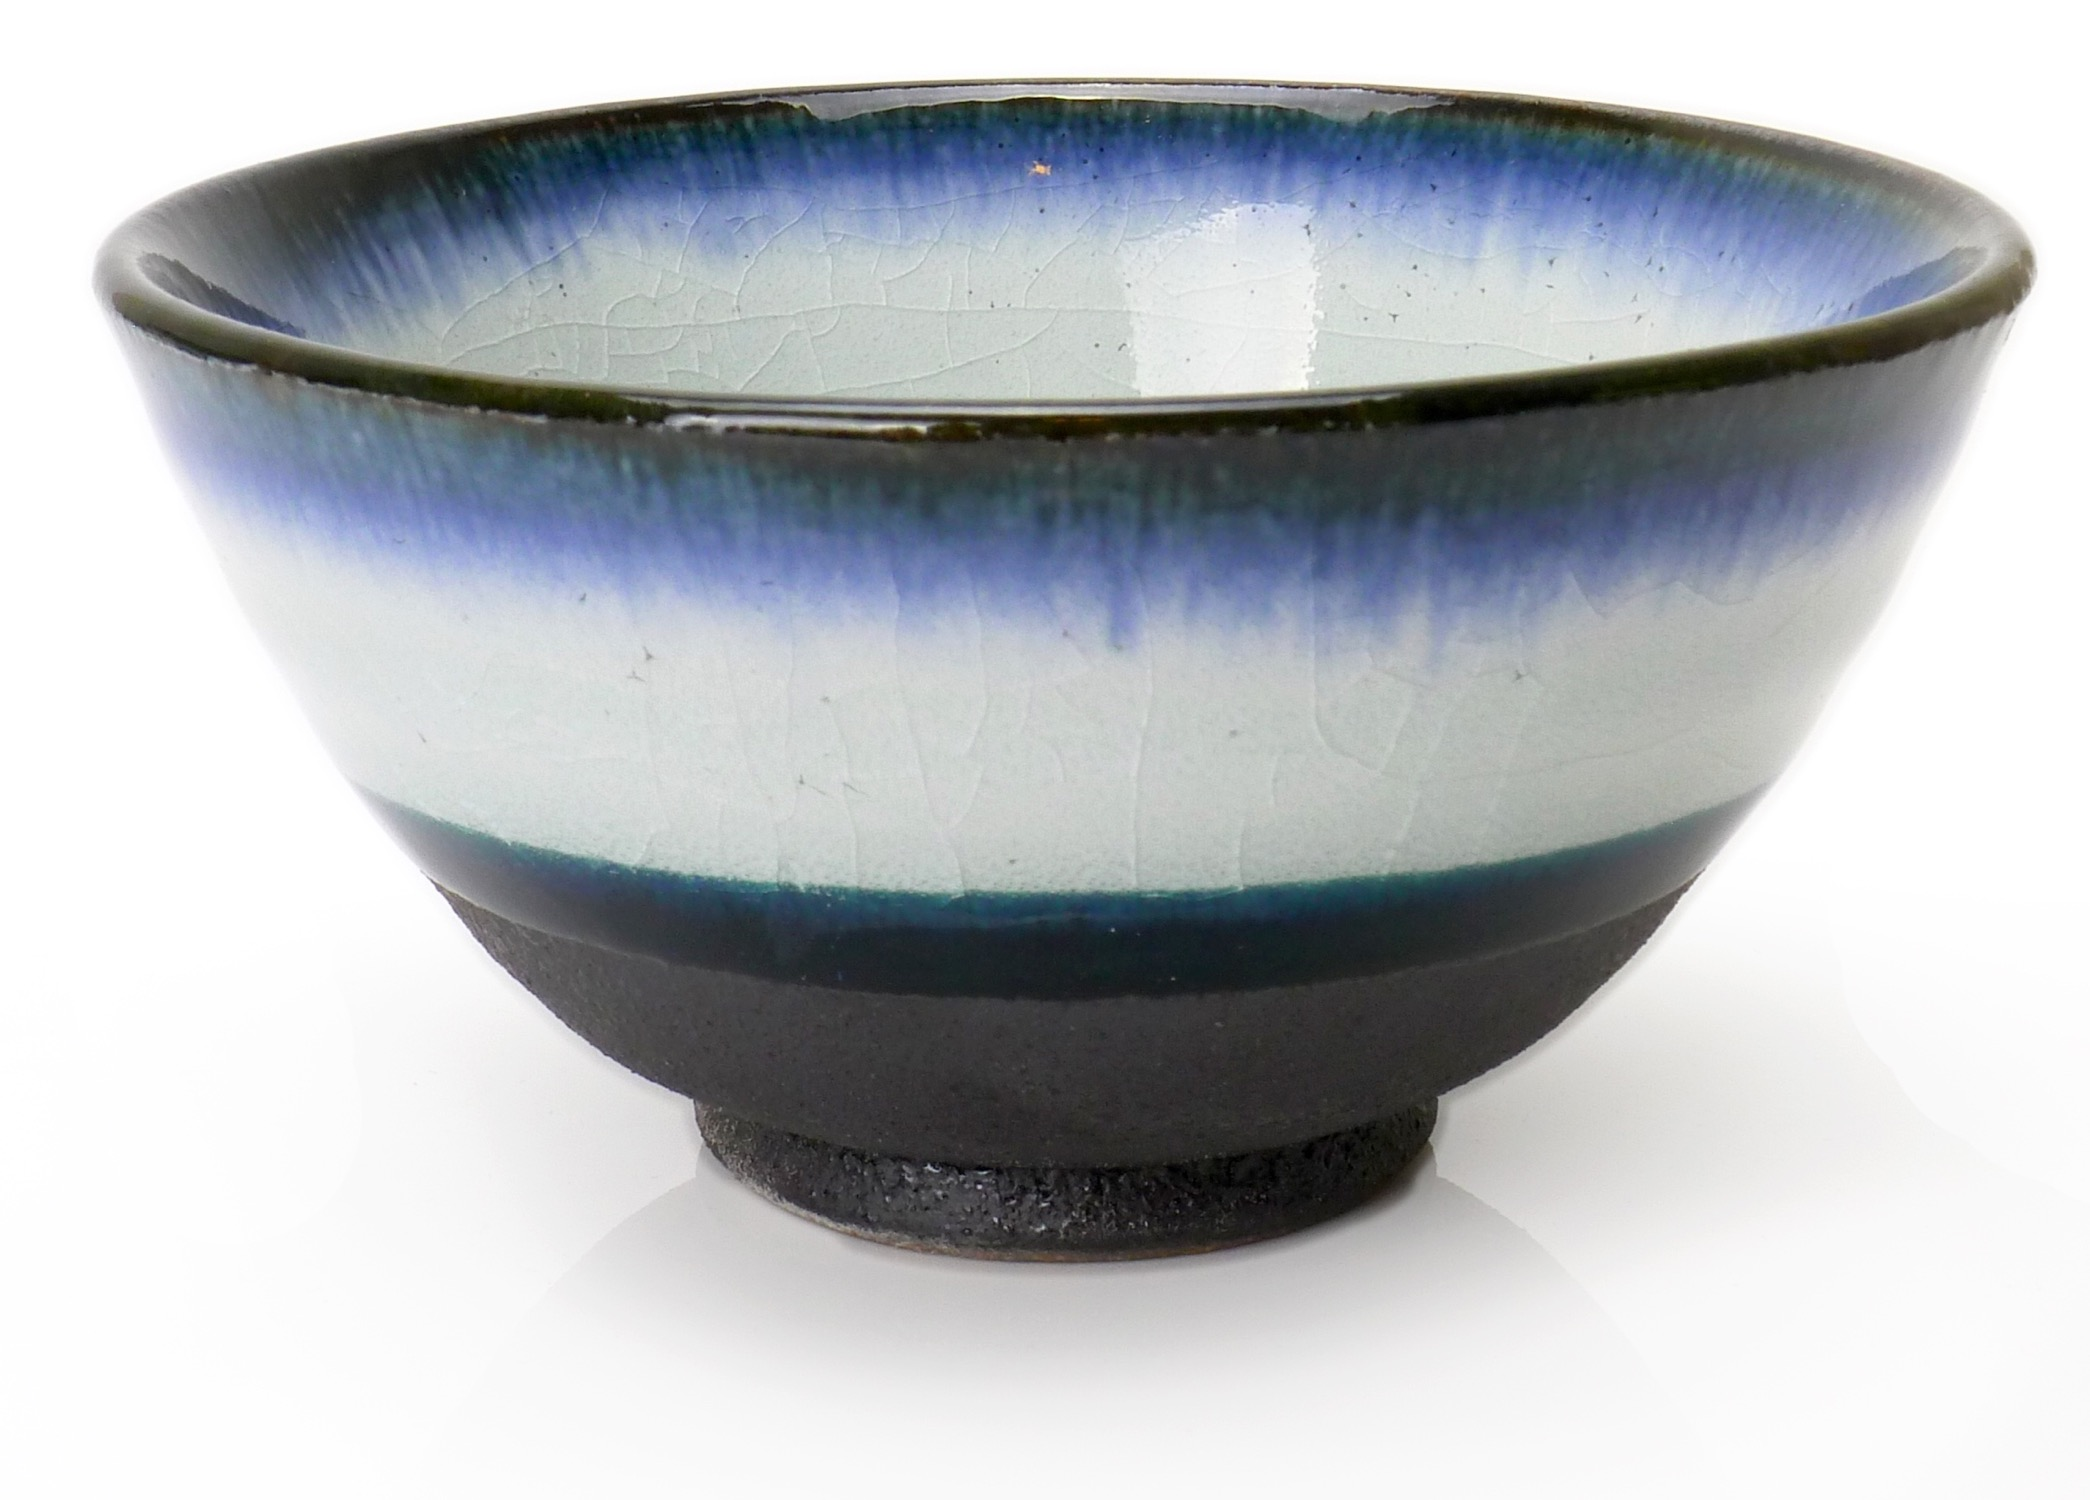 Image of White Porcelain Bowls with Indigo Dip, Appetizer or Dessert